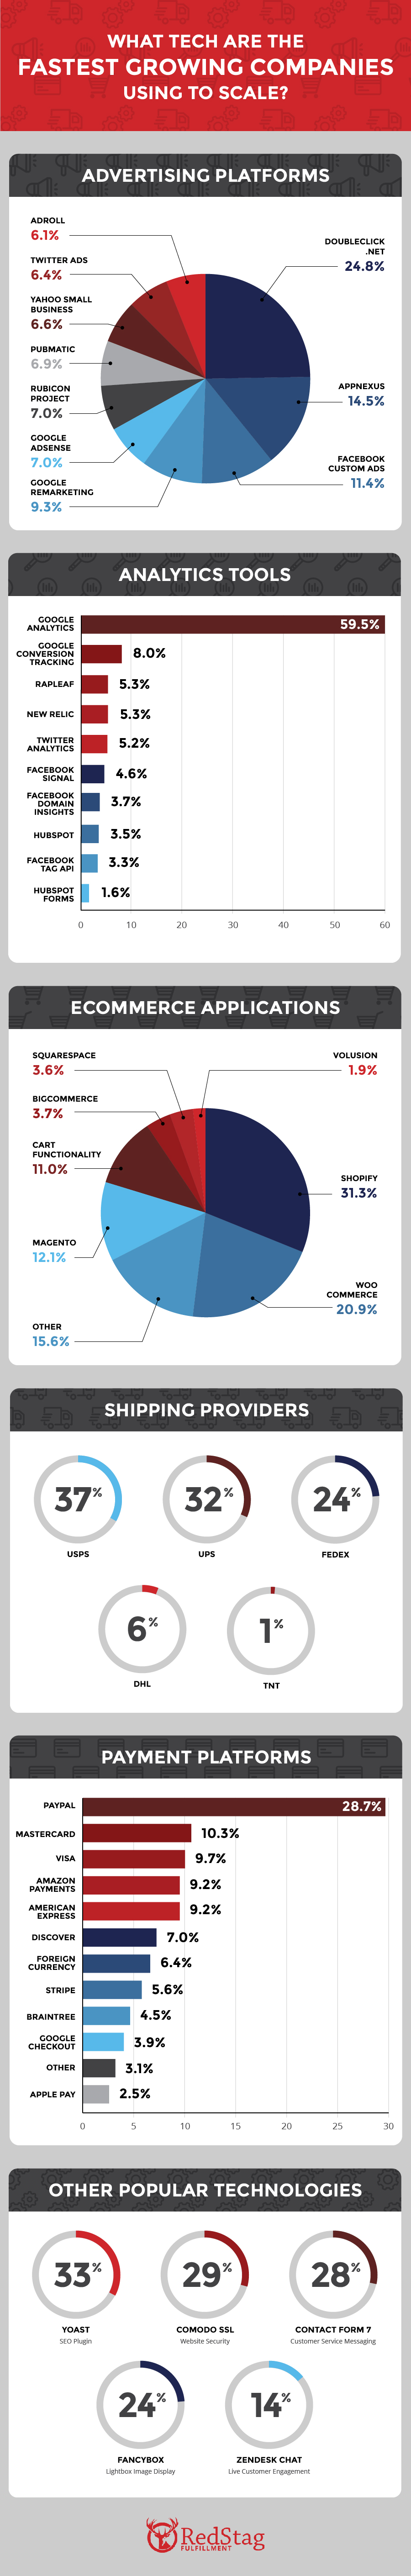 Behind the Scenes: What Tech do the Fastest Growing Companies Use? - Infographic